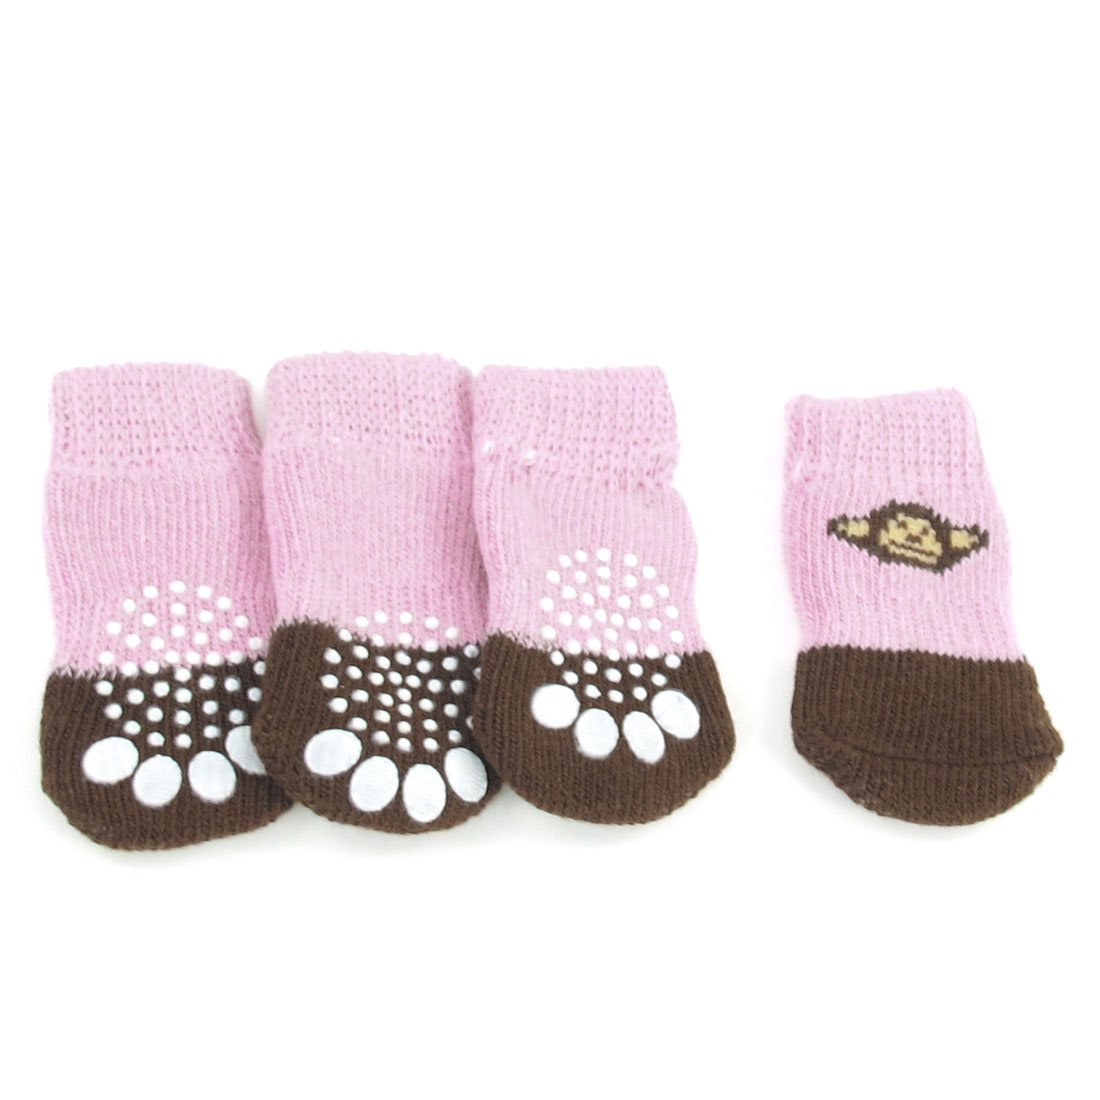 2 Pairs Warm Nonskid Paw Print Acrylic Pet Dog Doggie Socks Pink Brown Size S